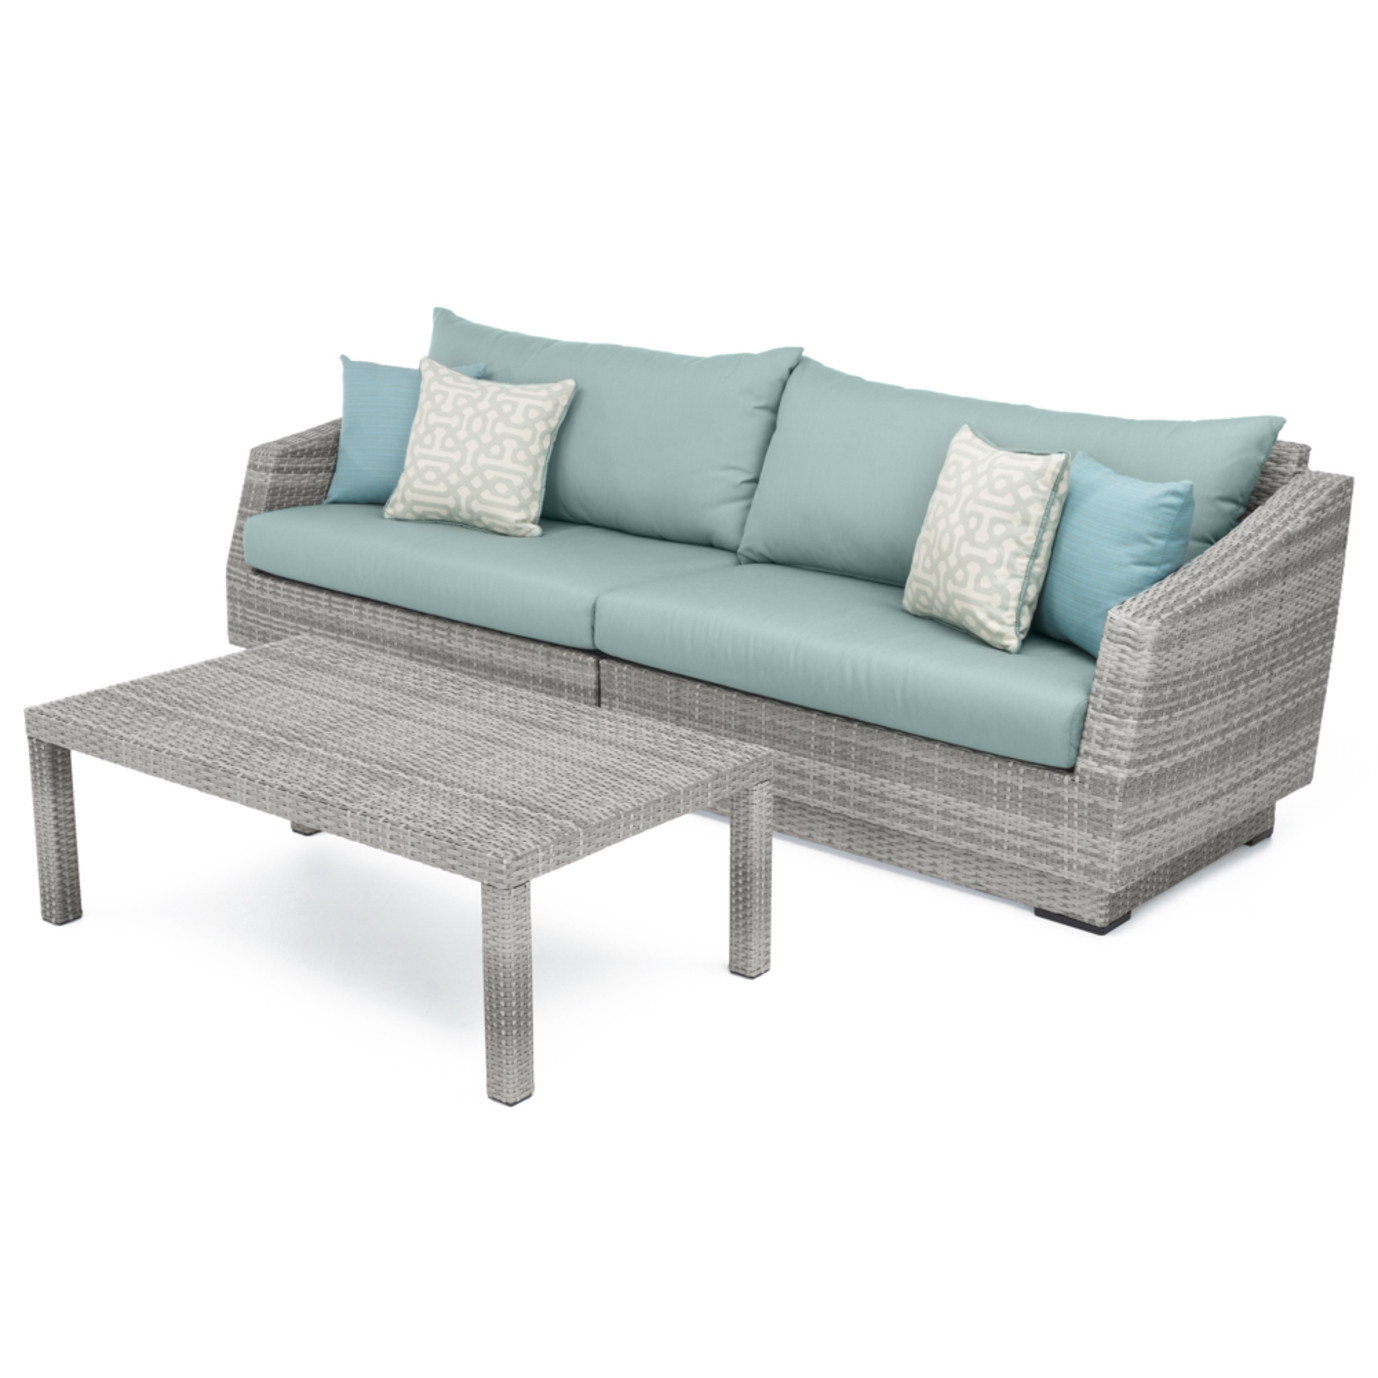 Cannes™ Sofa and Coffee Table